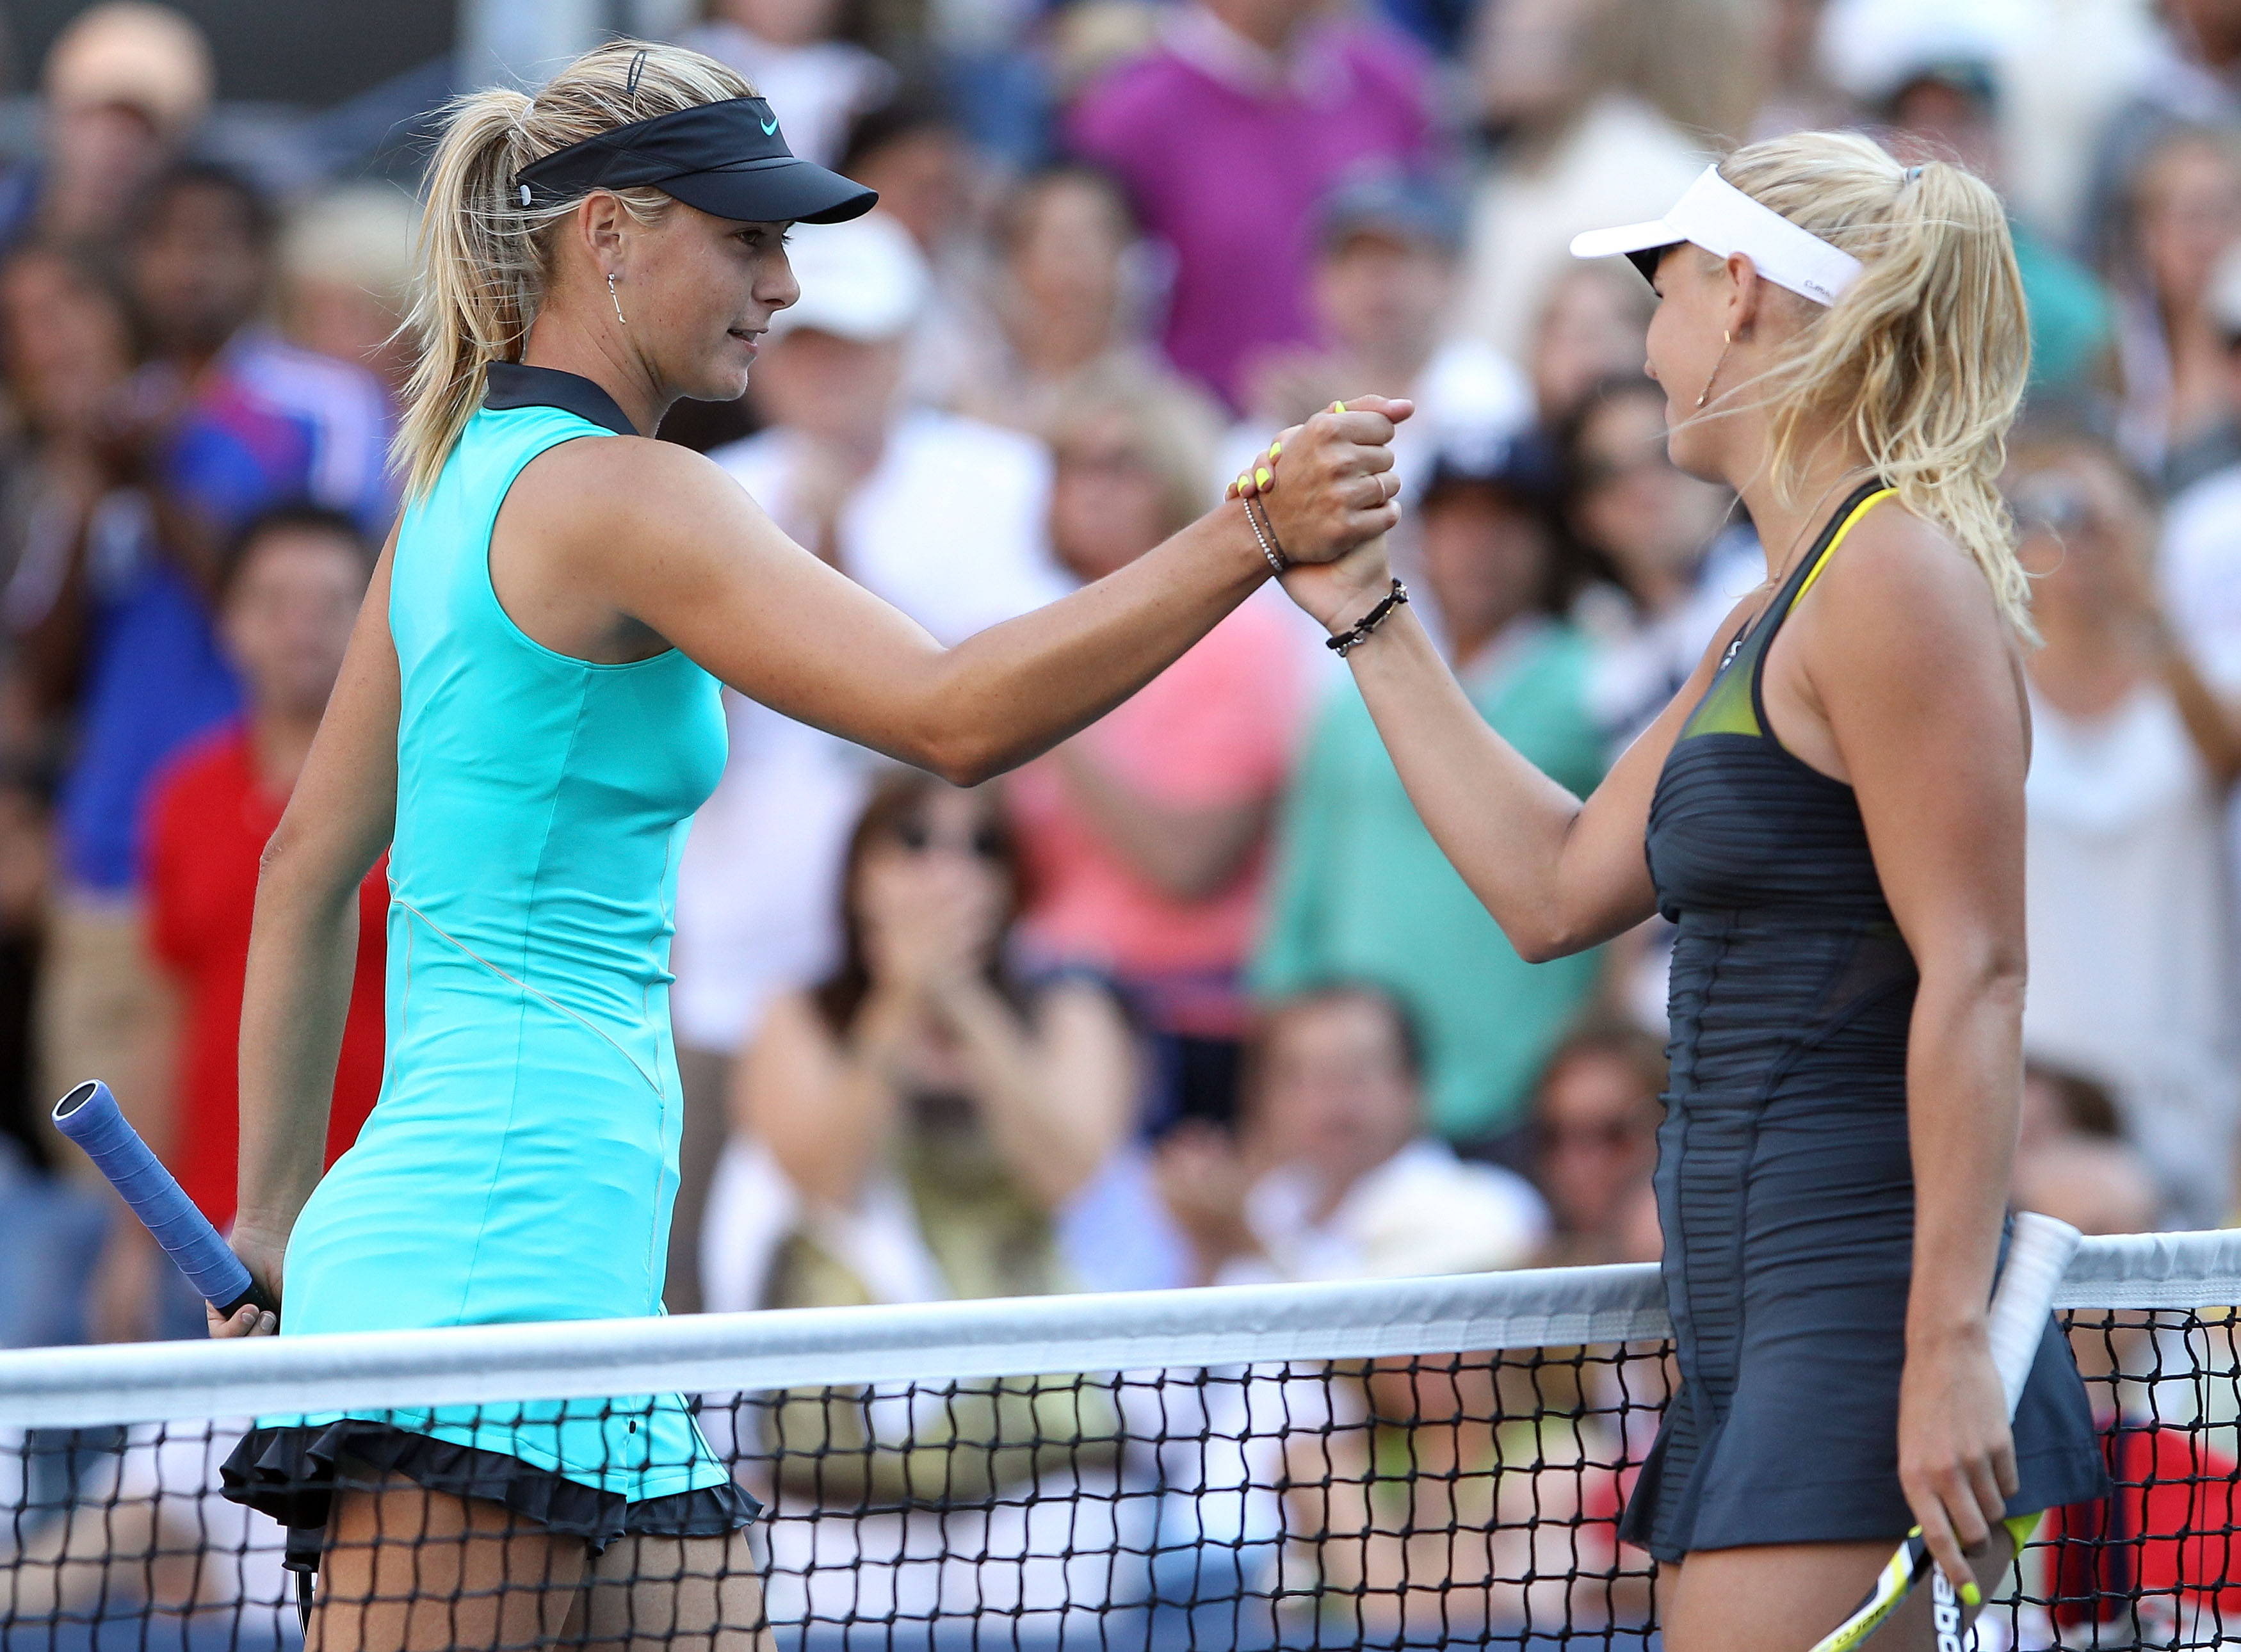 NEW YORK - SEPTEMBER 06:  Maria Sharapova of Russia (L) and Caroline Wozniacki of Denmark (R) shake hands at the net after the women's singles match on day eight of the 2010 U.S. Open at the USTA Billie Jean King National Tennis Center on September 6, 201